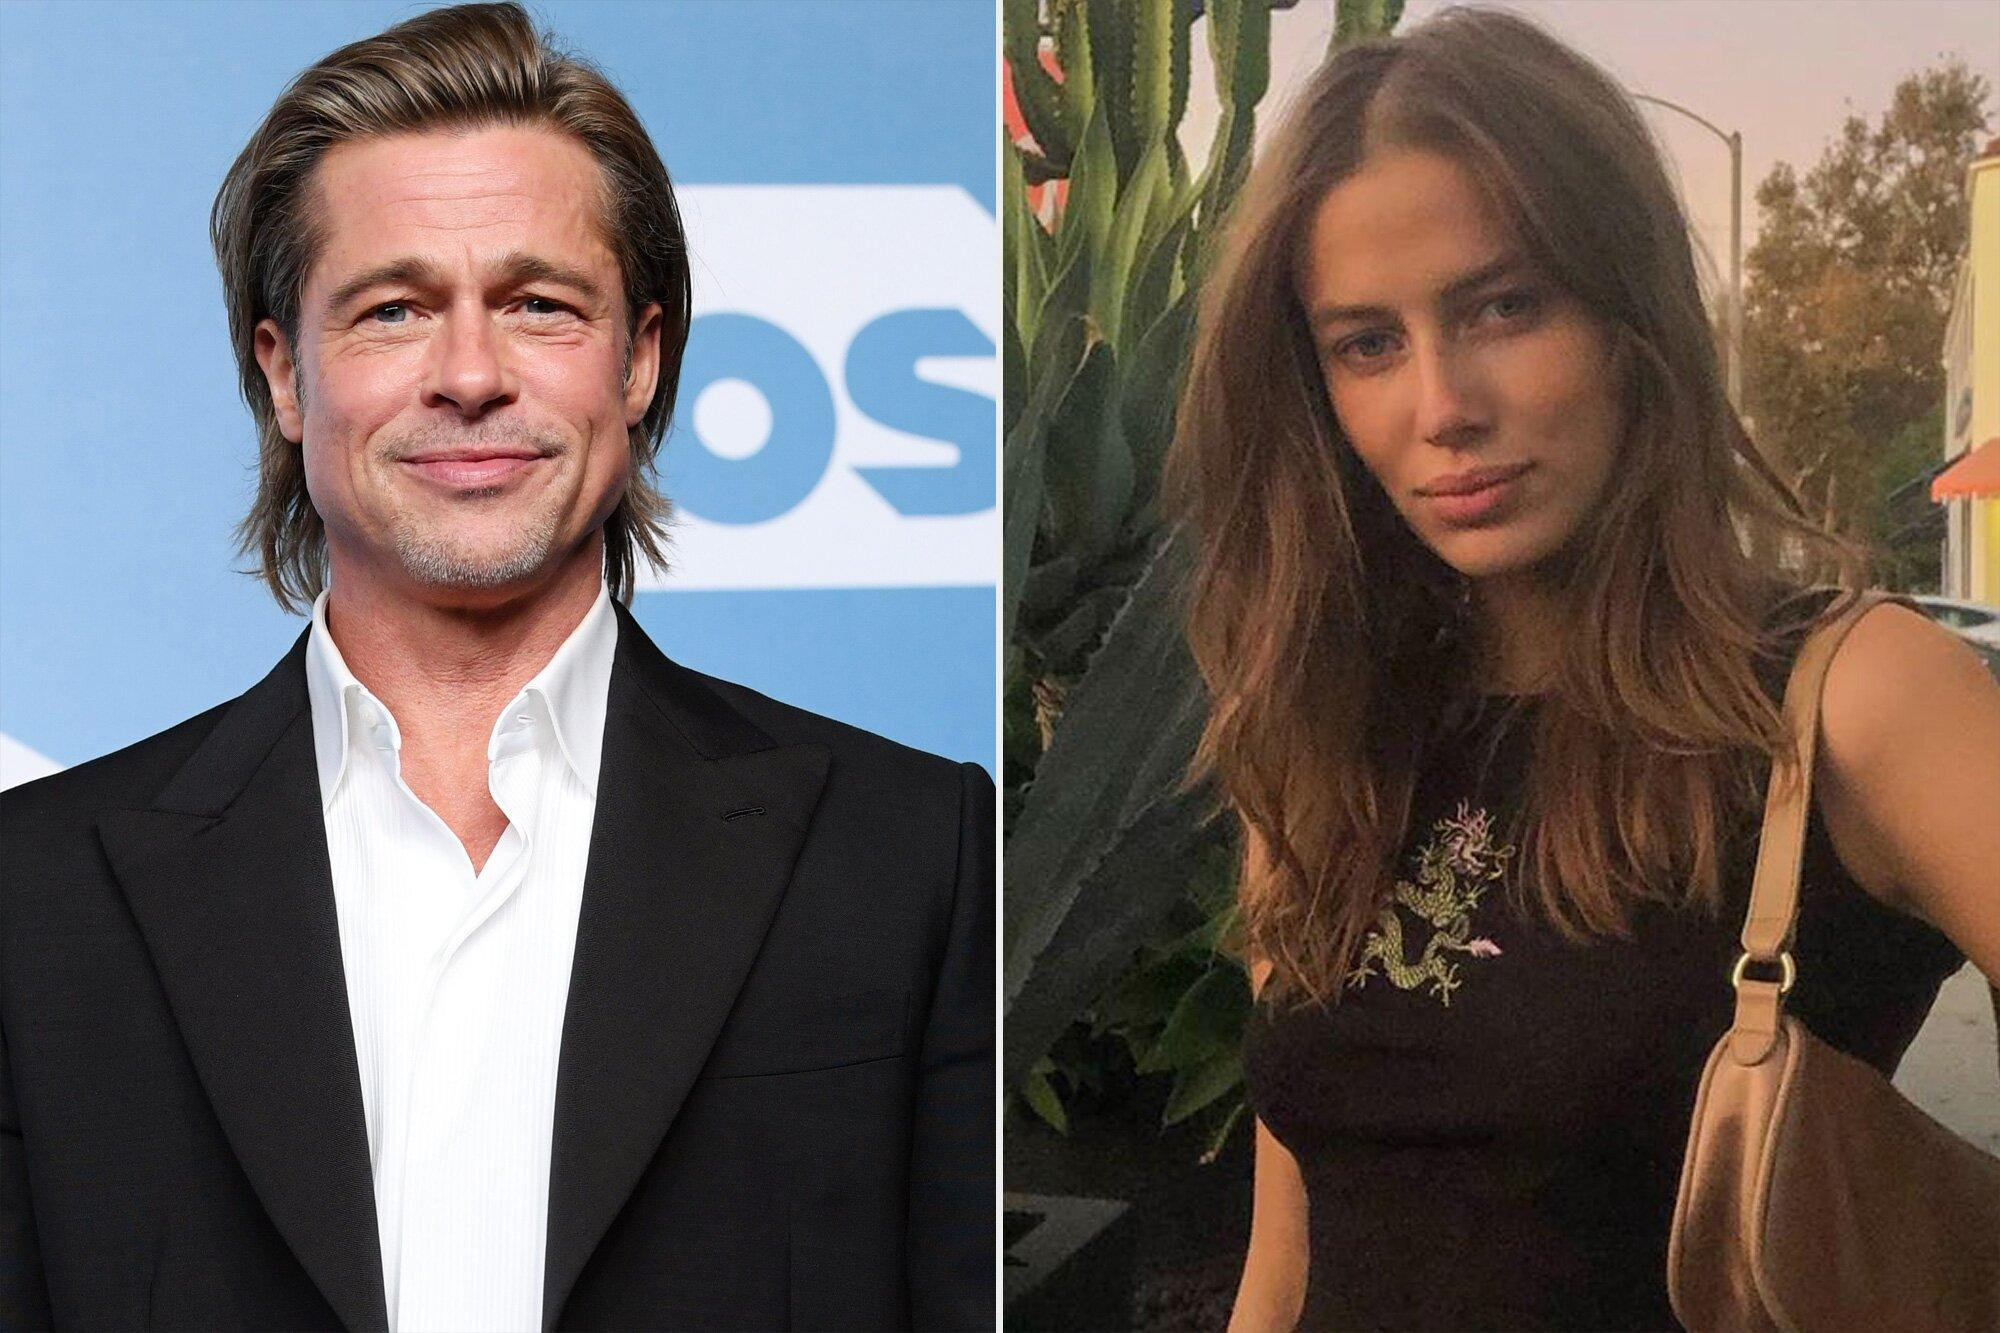 Brad Pitt And New Girlfriend Nicole Poturalski Were Very Flirty Last Year At An Event Source